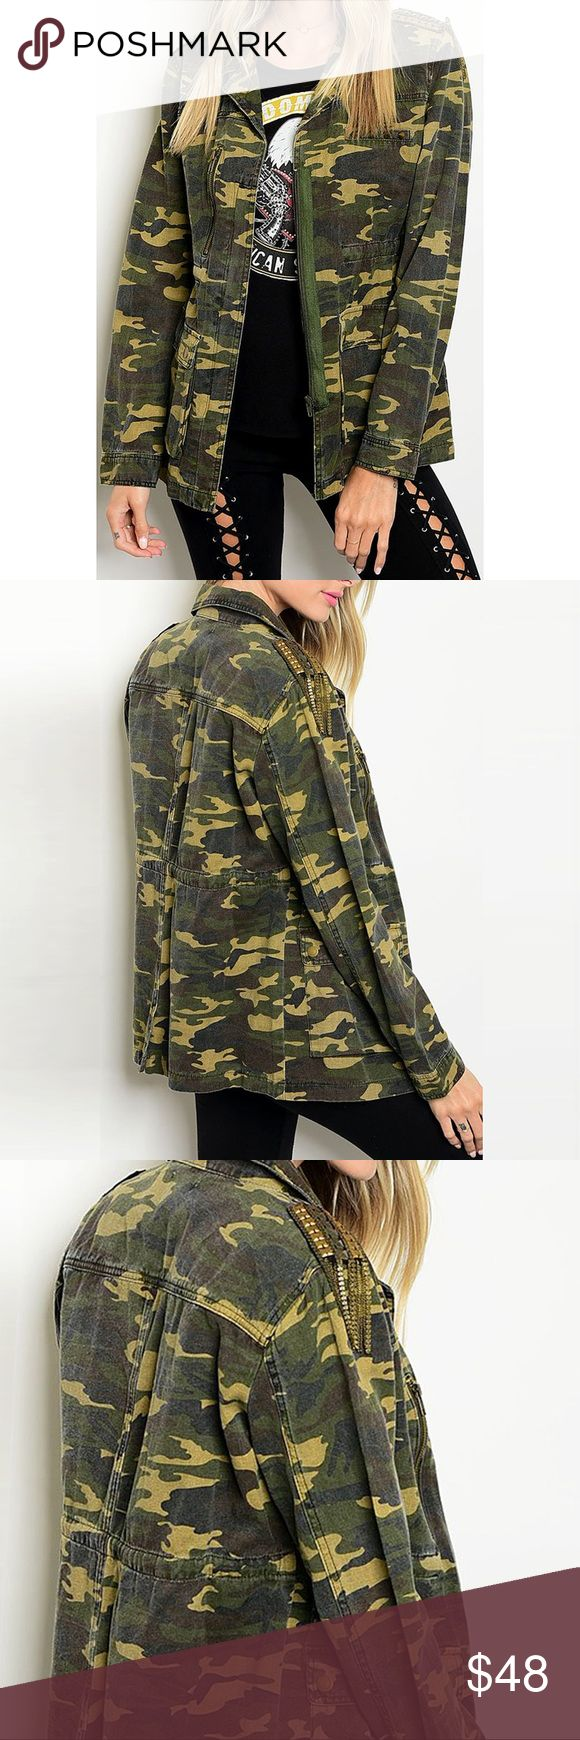 "Shoulder Studded, Gracie Military Utility Jacket ❤️ BUNDLES ❤️ DISCOUNTS ❌ NO TRADES ❌ NO Low balling!  • Studs on shoulder and chest pocket • 100% Cotton   * MEASUREMENTS • SMALL: - Length: 25.25"" Approx - Bust: 36.5"" Approx • • MEDIUM: - Length: 26"" Approx - Bust: 39.15"" Approx • • LARGE: - Length: 26.5"" Approx - Bust: 40.7"" Approx • Jackets & Coats Utility Jackets"